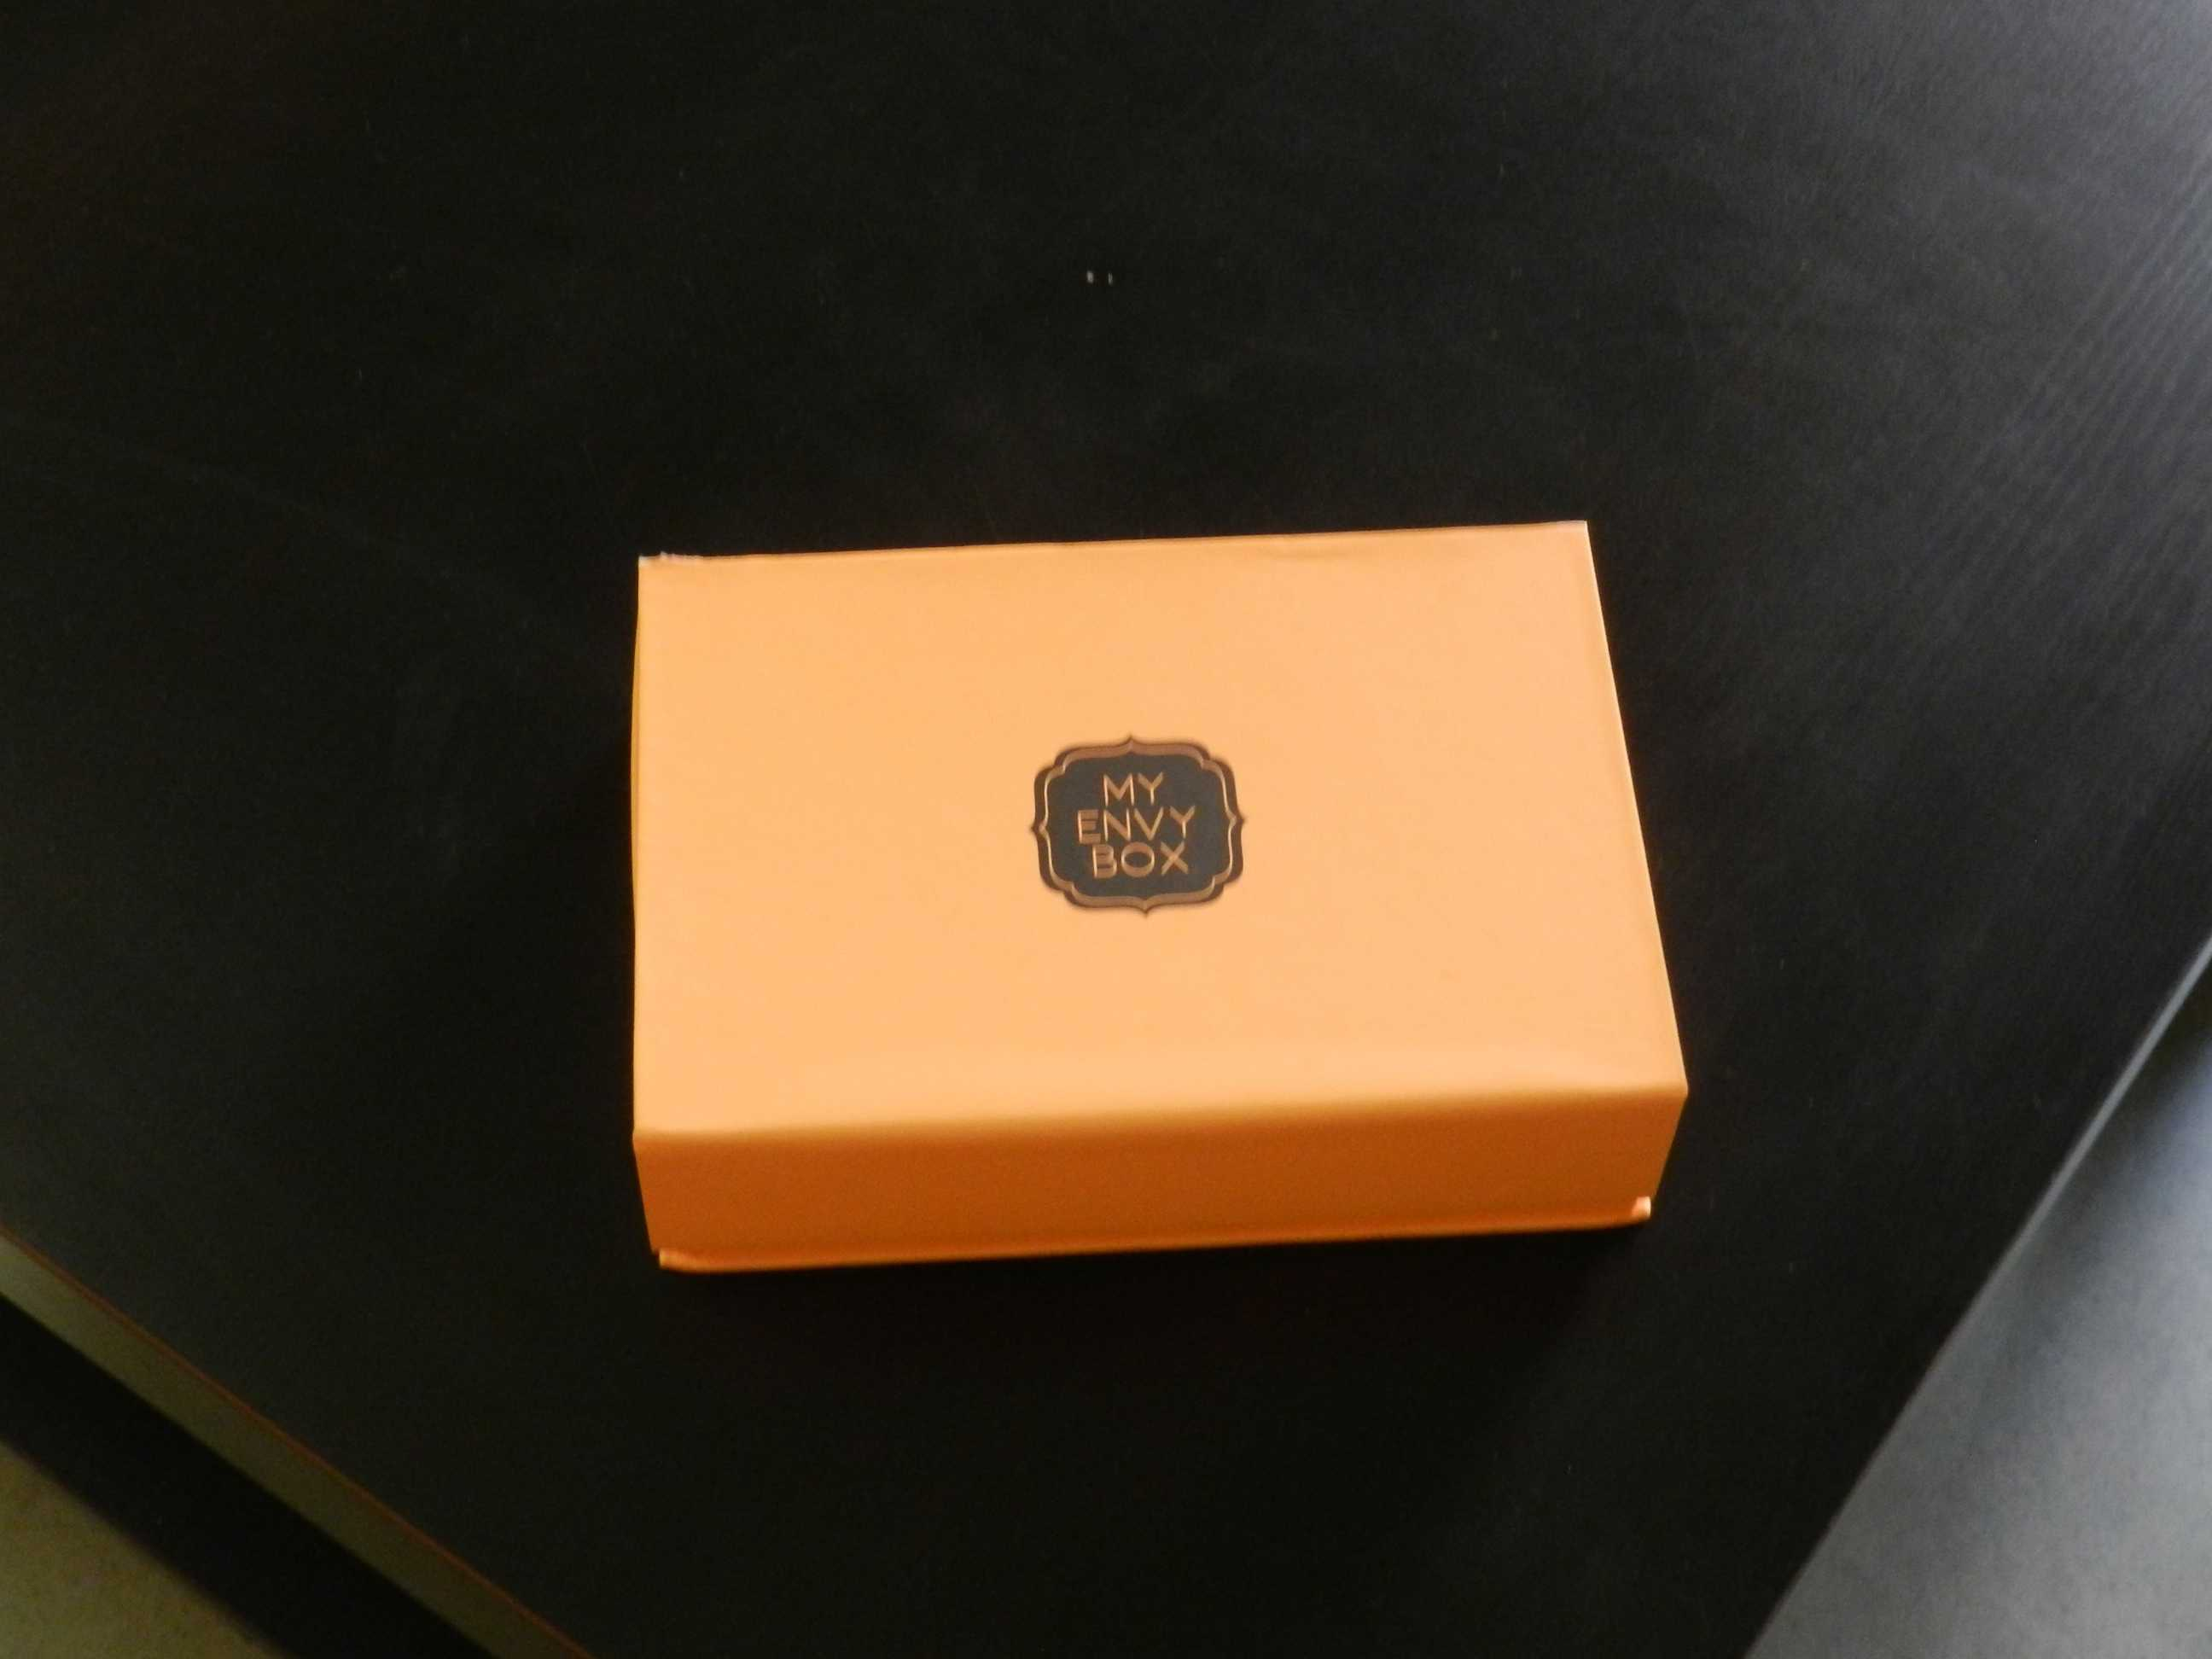 DSCN1574 - My Envy Box-Review & Tips for Selecting the Right Beauty Box